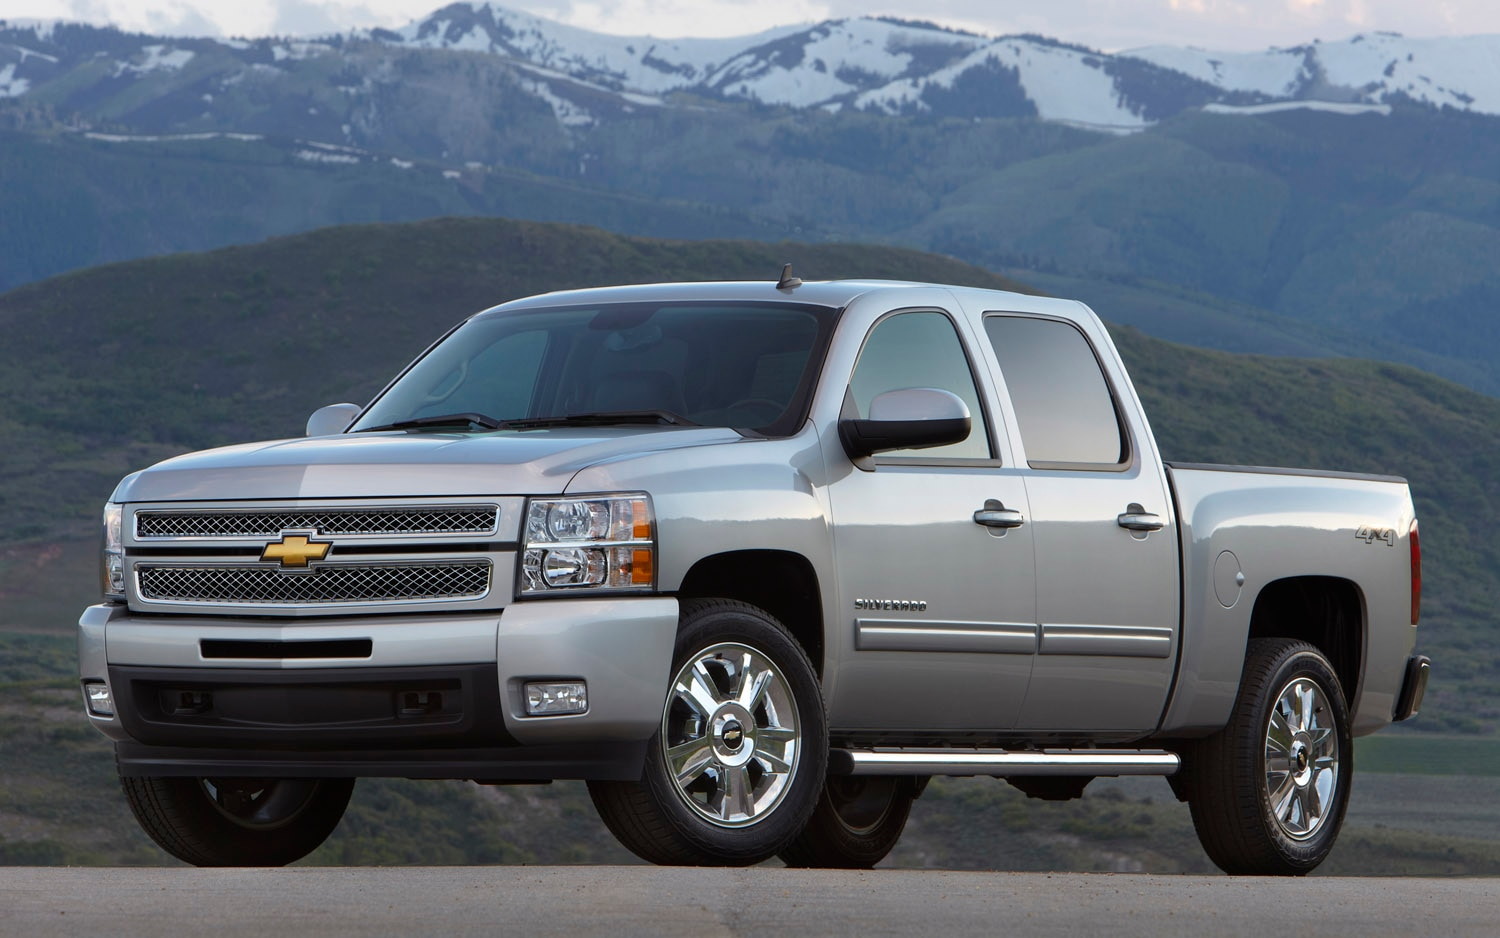 2012 Chevrolet Silverado LTZ Front Three Quarter1